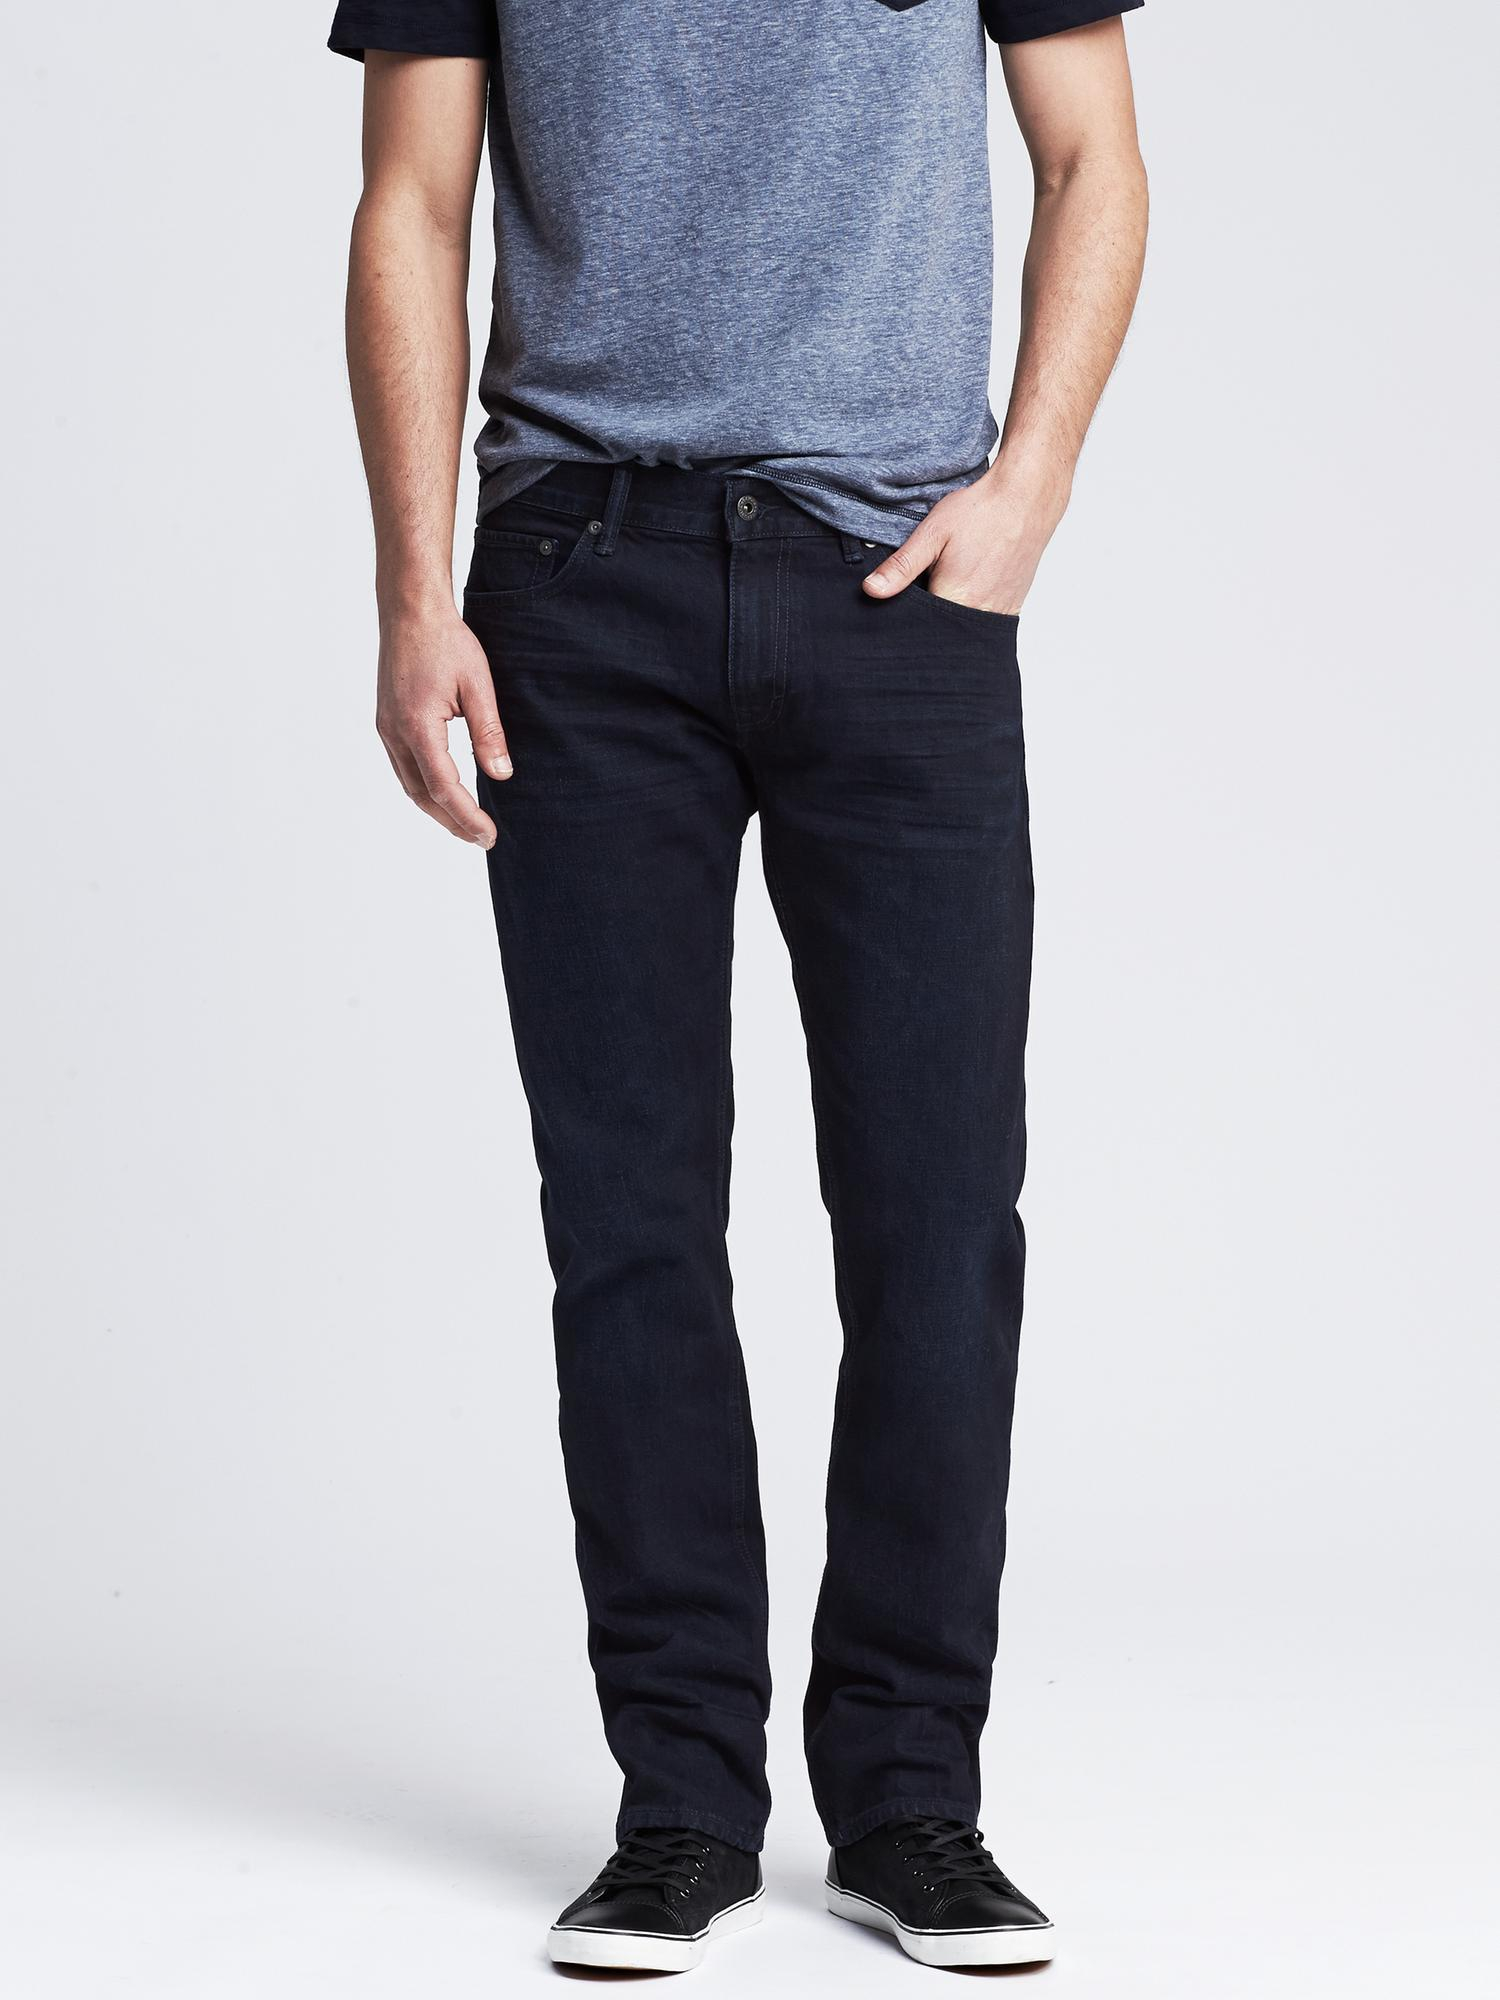 432cdc1e Banana Republic Factory Store Banana Republic offers versatile,  contemporary classics, designed for today with style that endures.